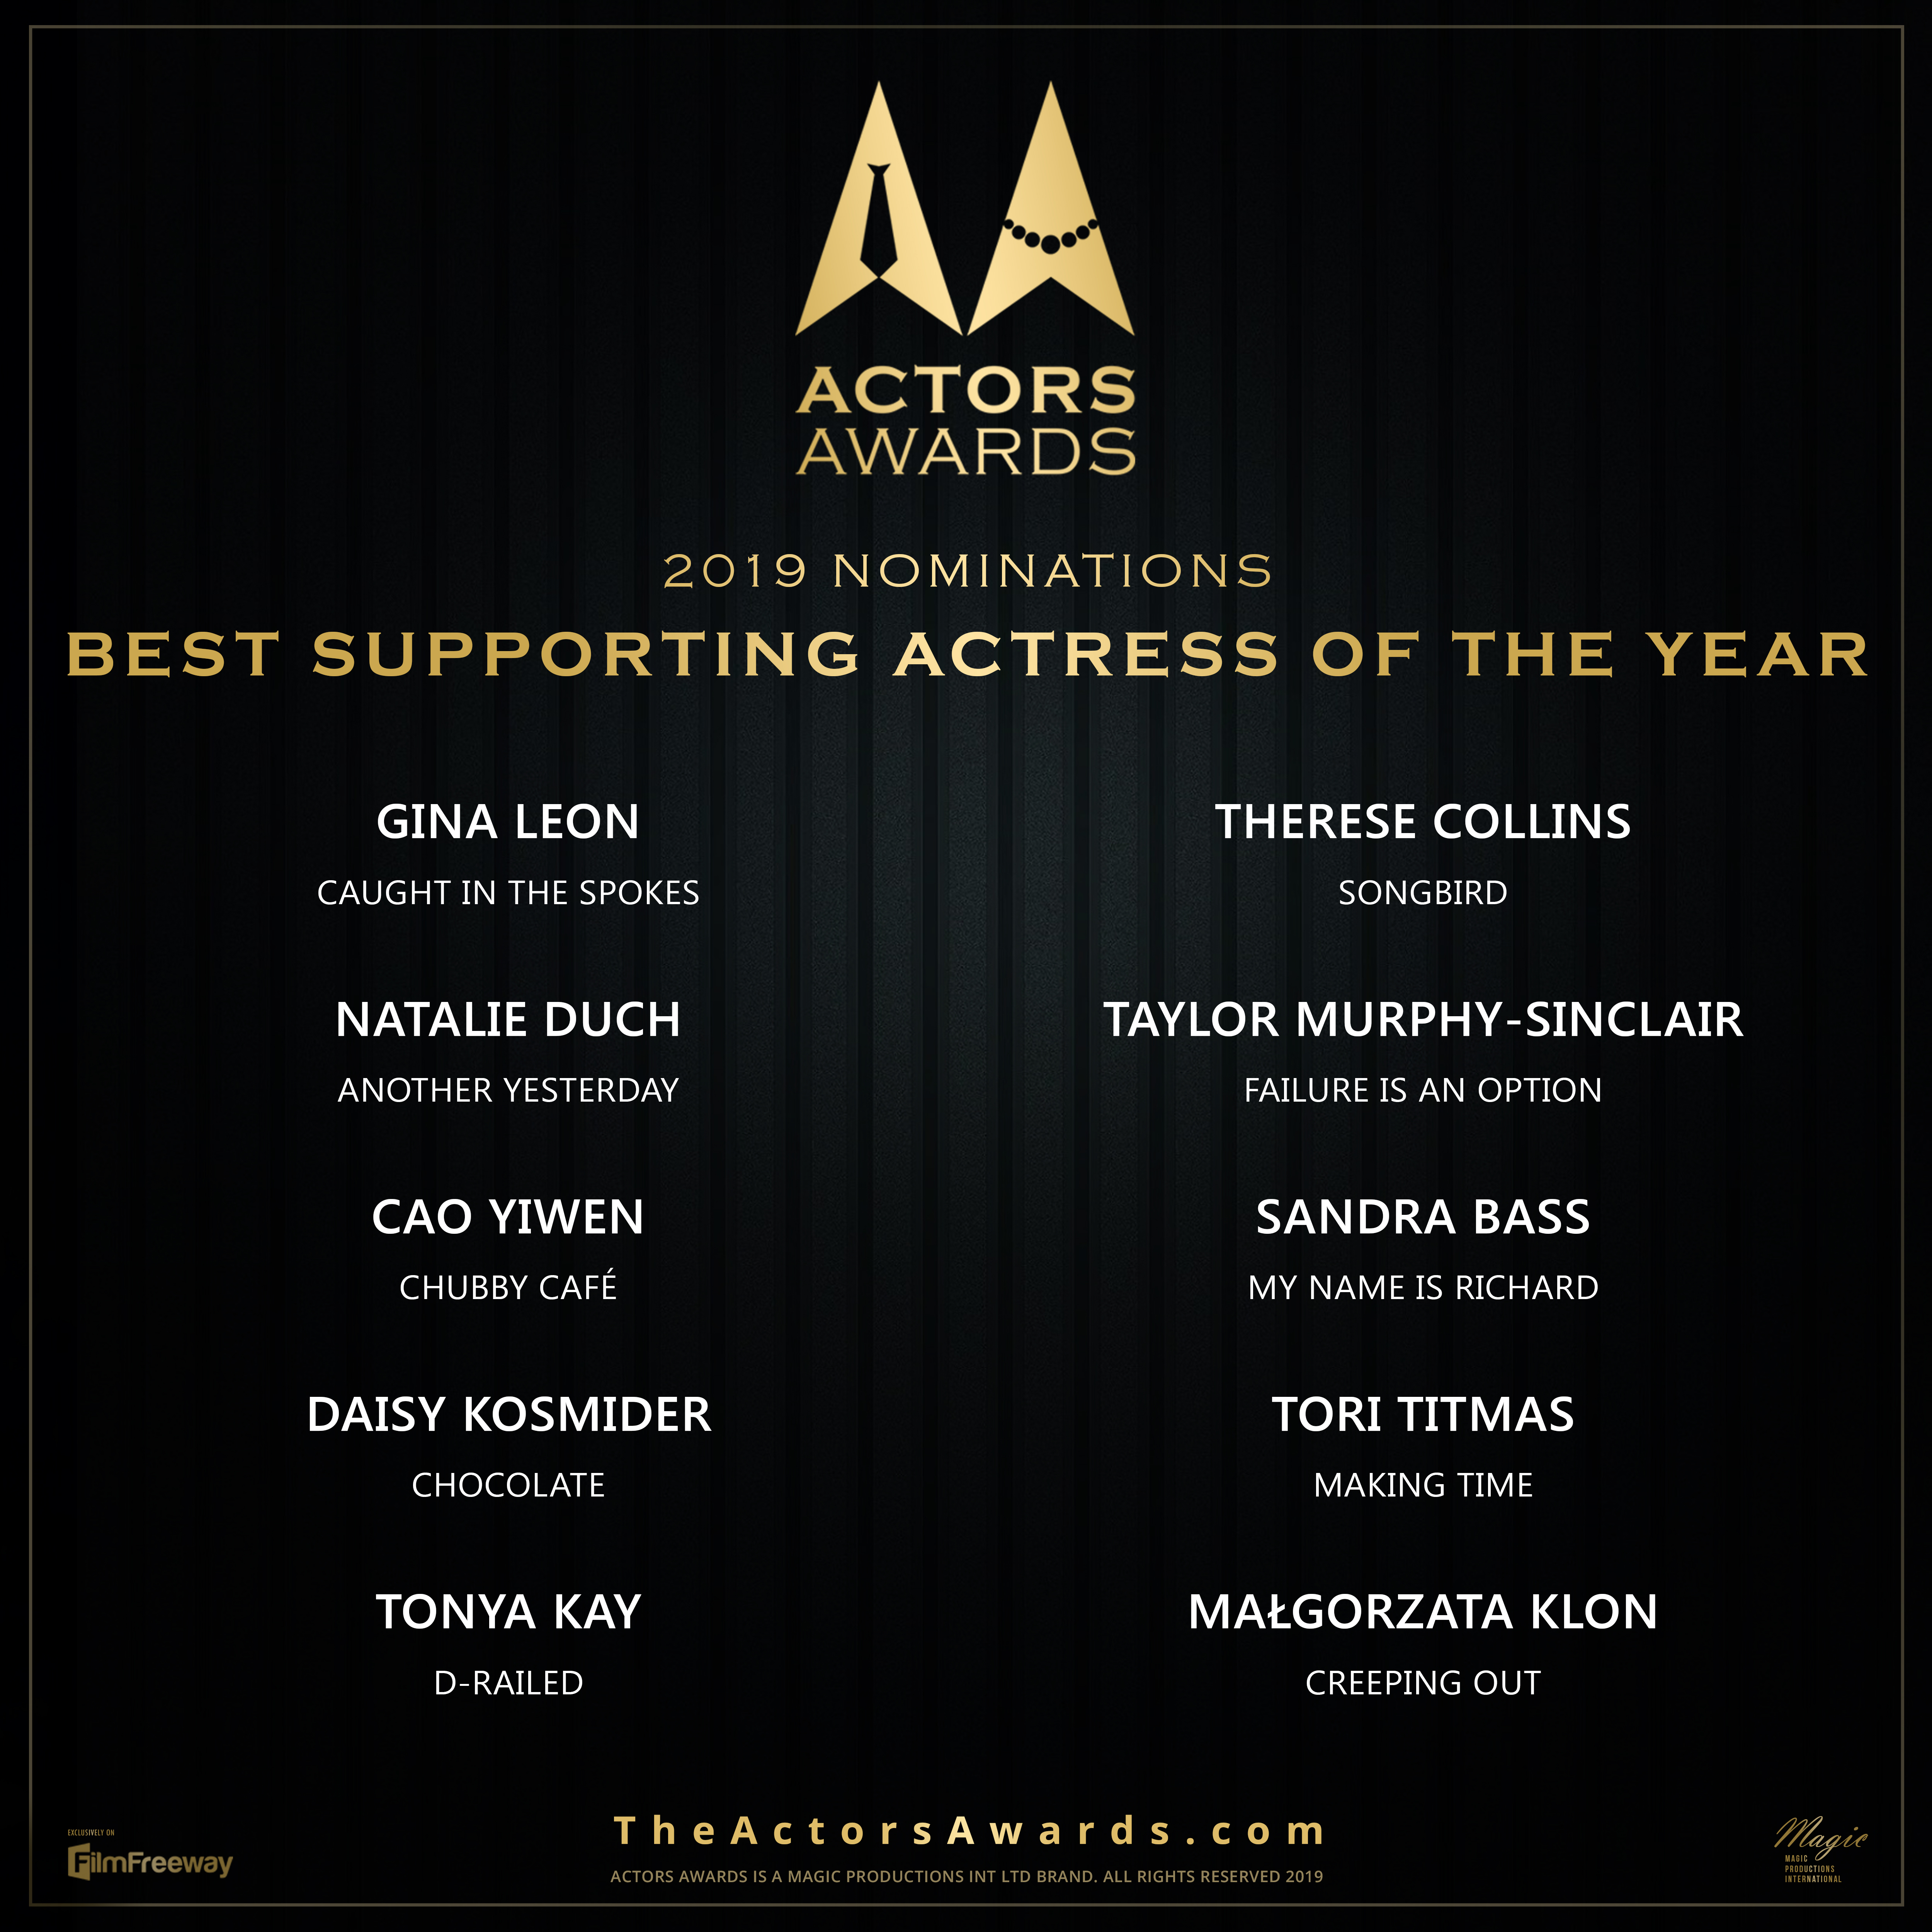 ACTORS AWARDS Best Supporting Actress